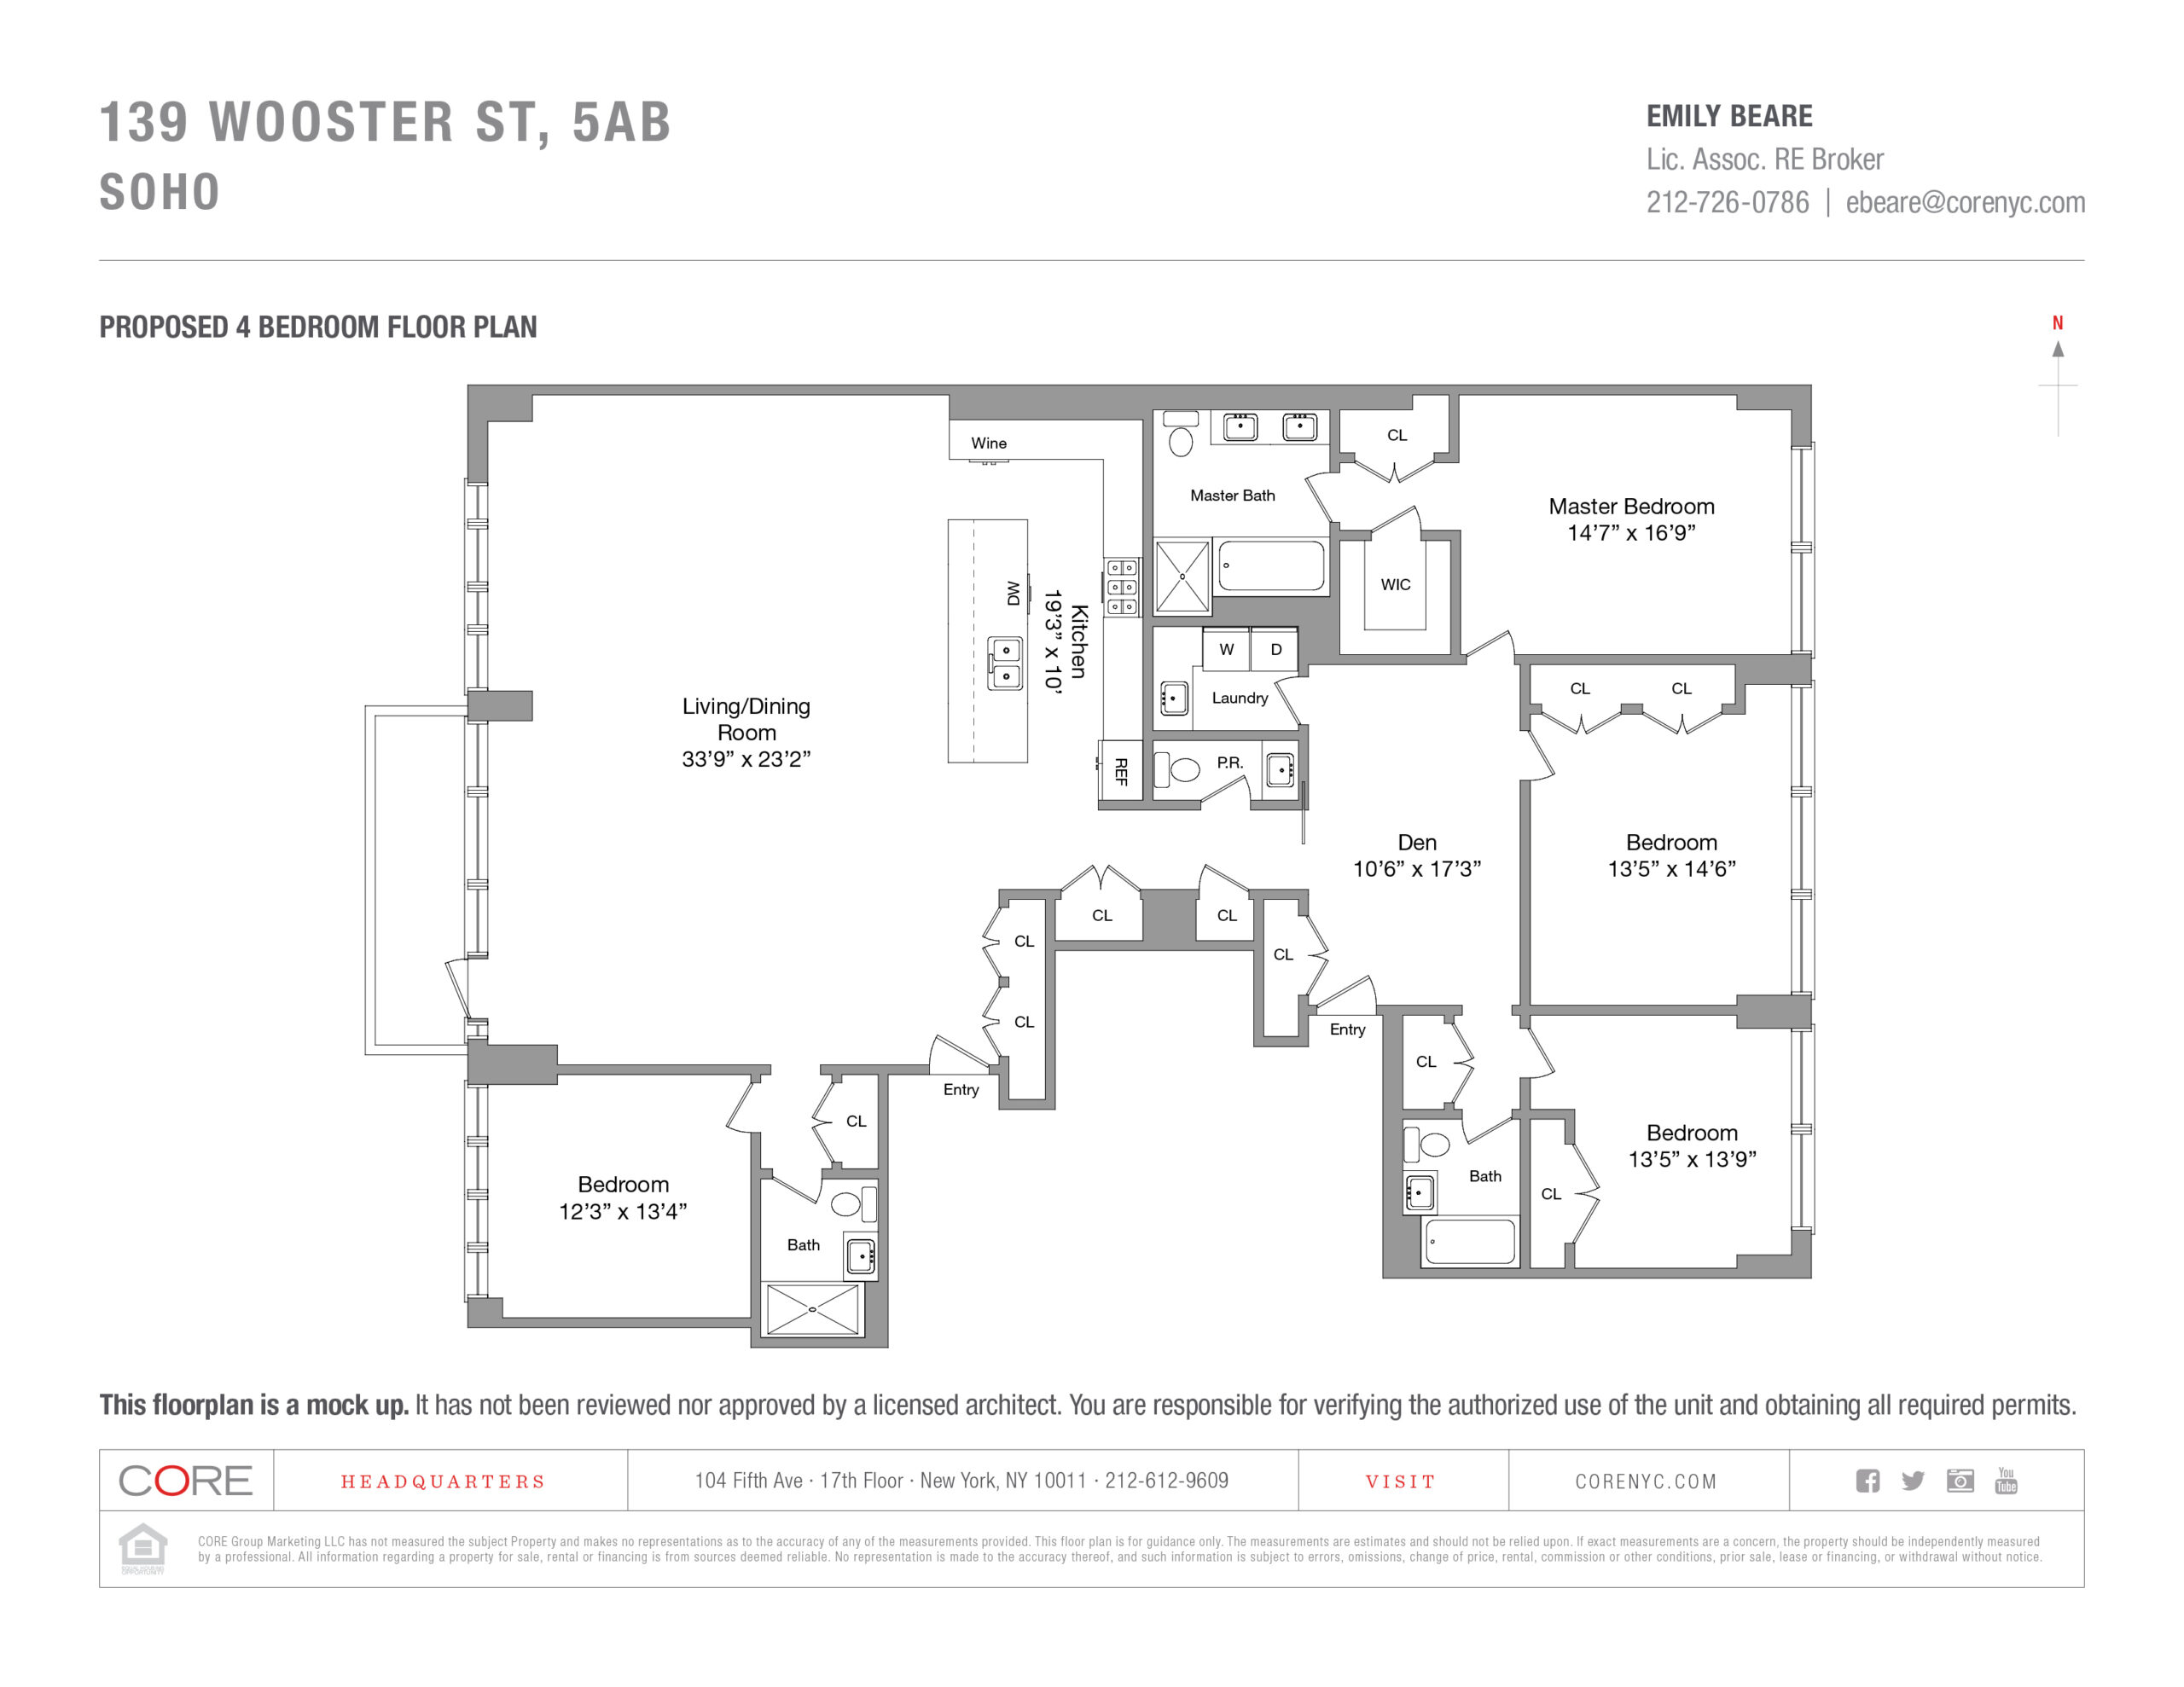 139 Wooster St. 5AB, New York, NY 10012